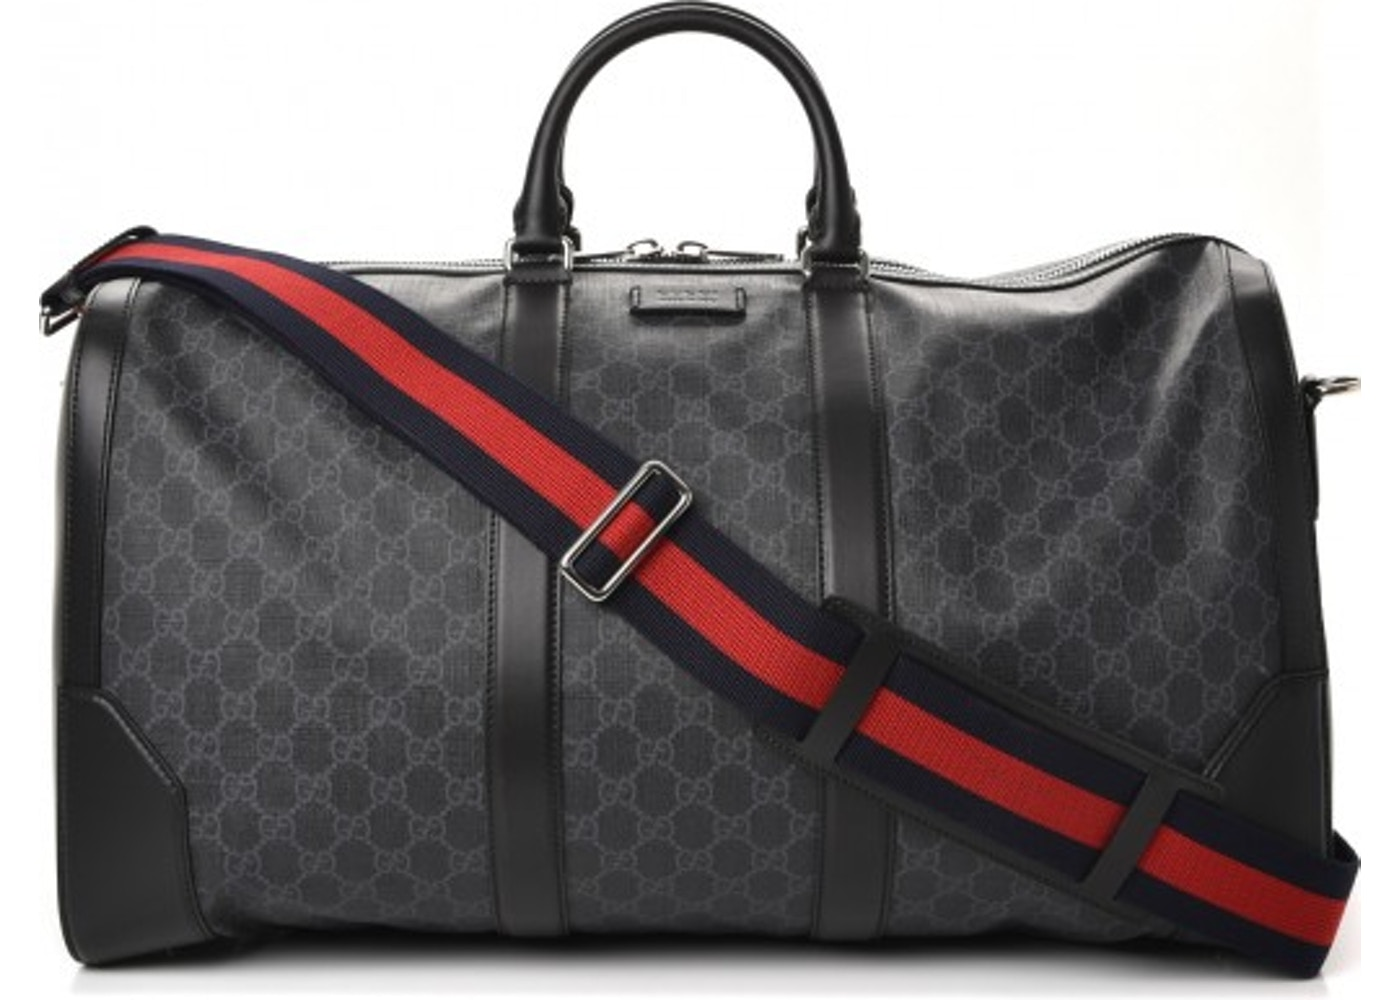 555c21652084 Gucci Carry On Duffle Monogram GG Supreme Black